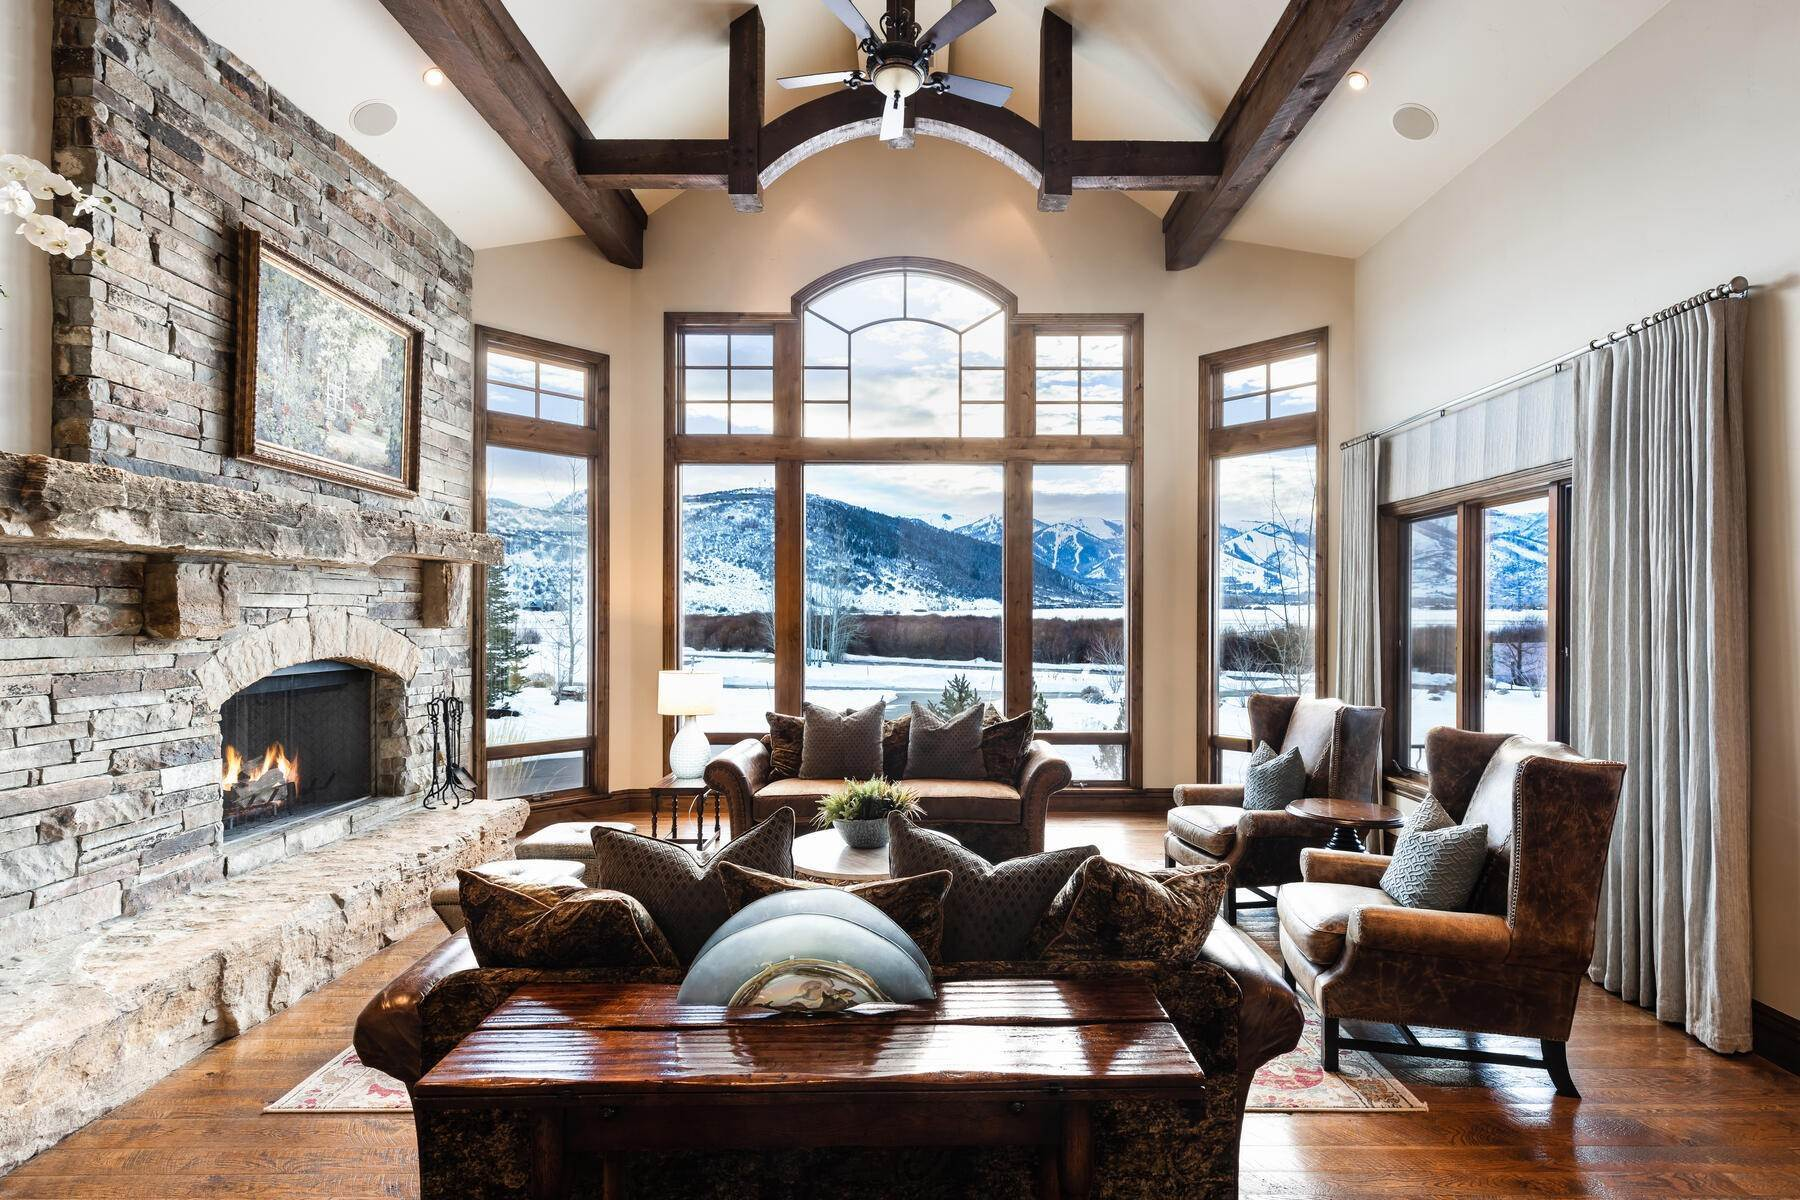 3. Single Family Homes for Sale at Rare Ranch Creek Estates Home Boasts over 3 Acres with Unparalleled Views 4400 N Ranch Creek Ln Park City, Utah 84098 United States